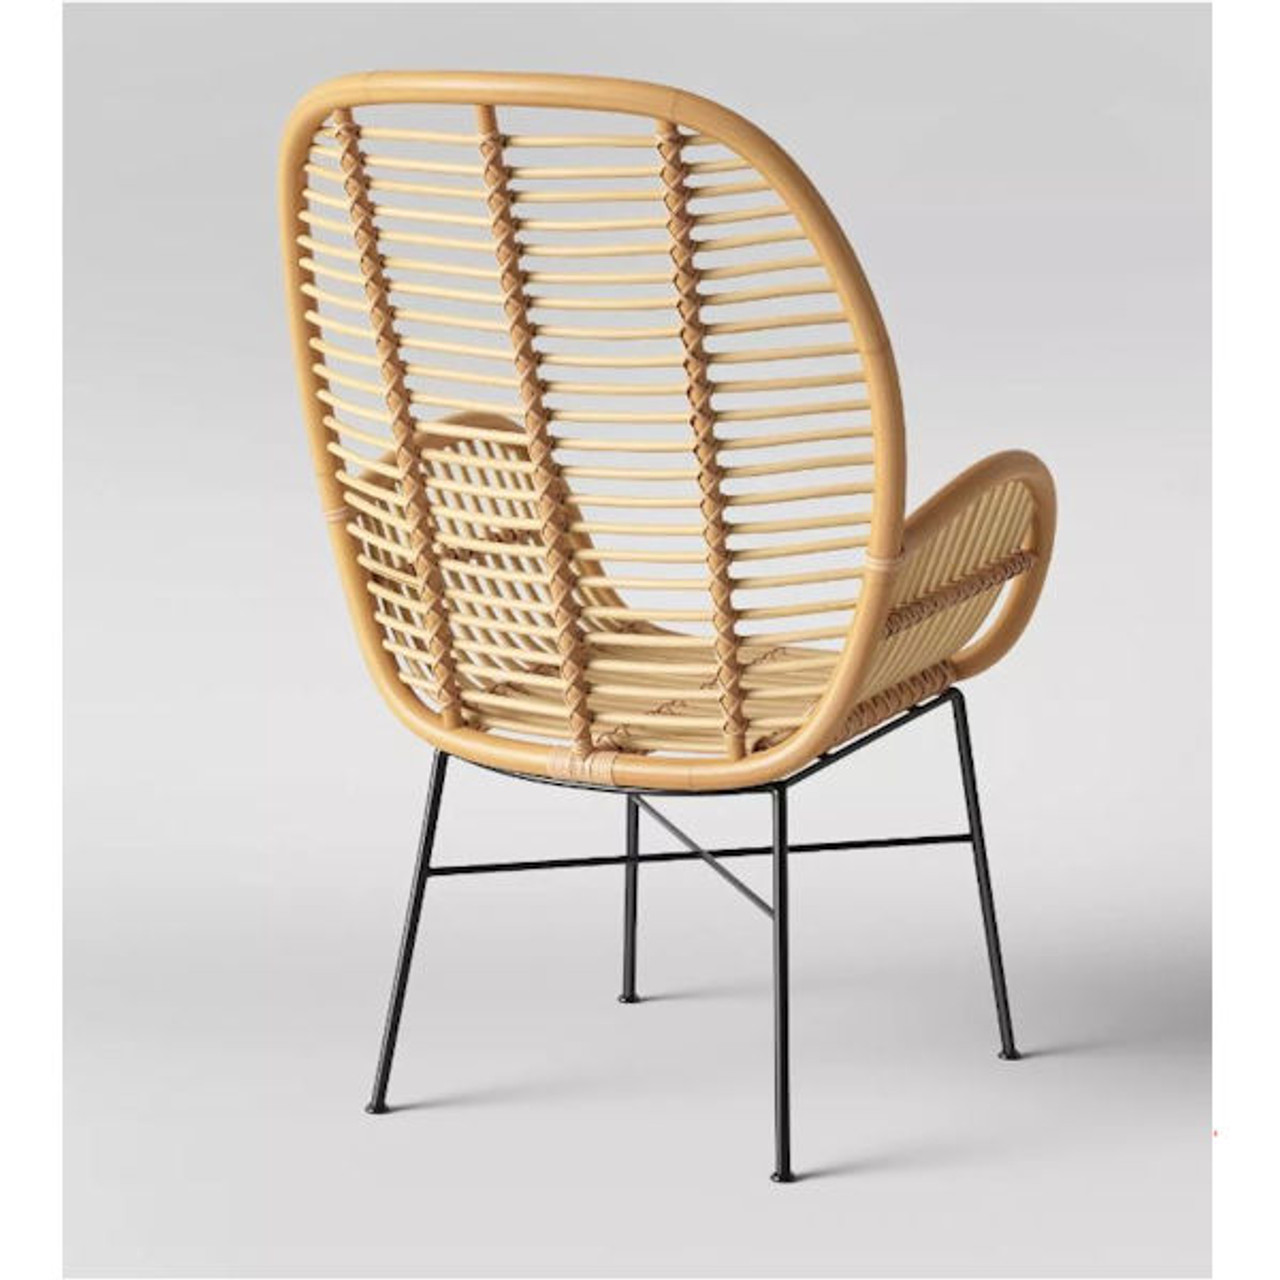 Lily Rattan Arm Chair with Metal Legs - Assembly Required